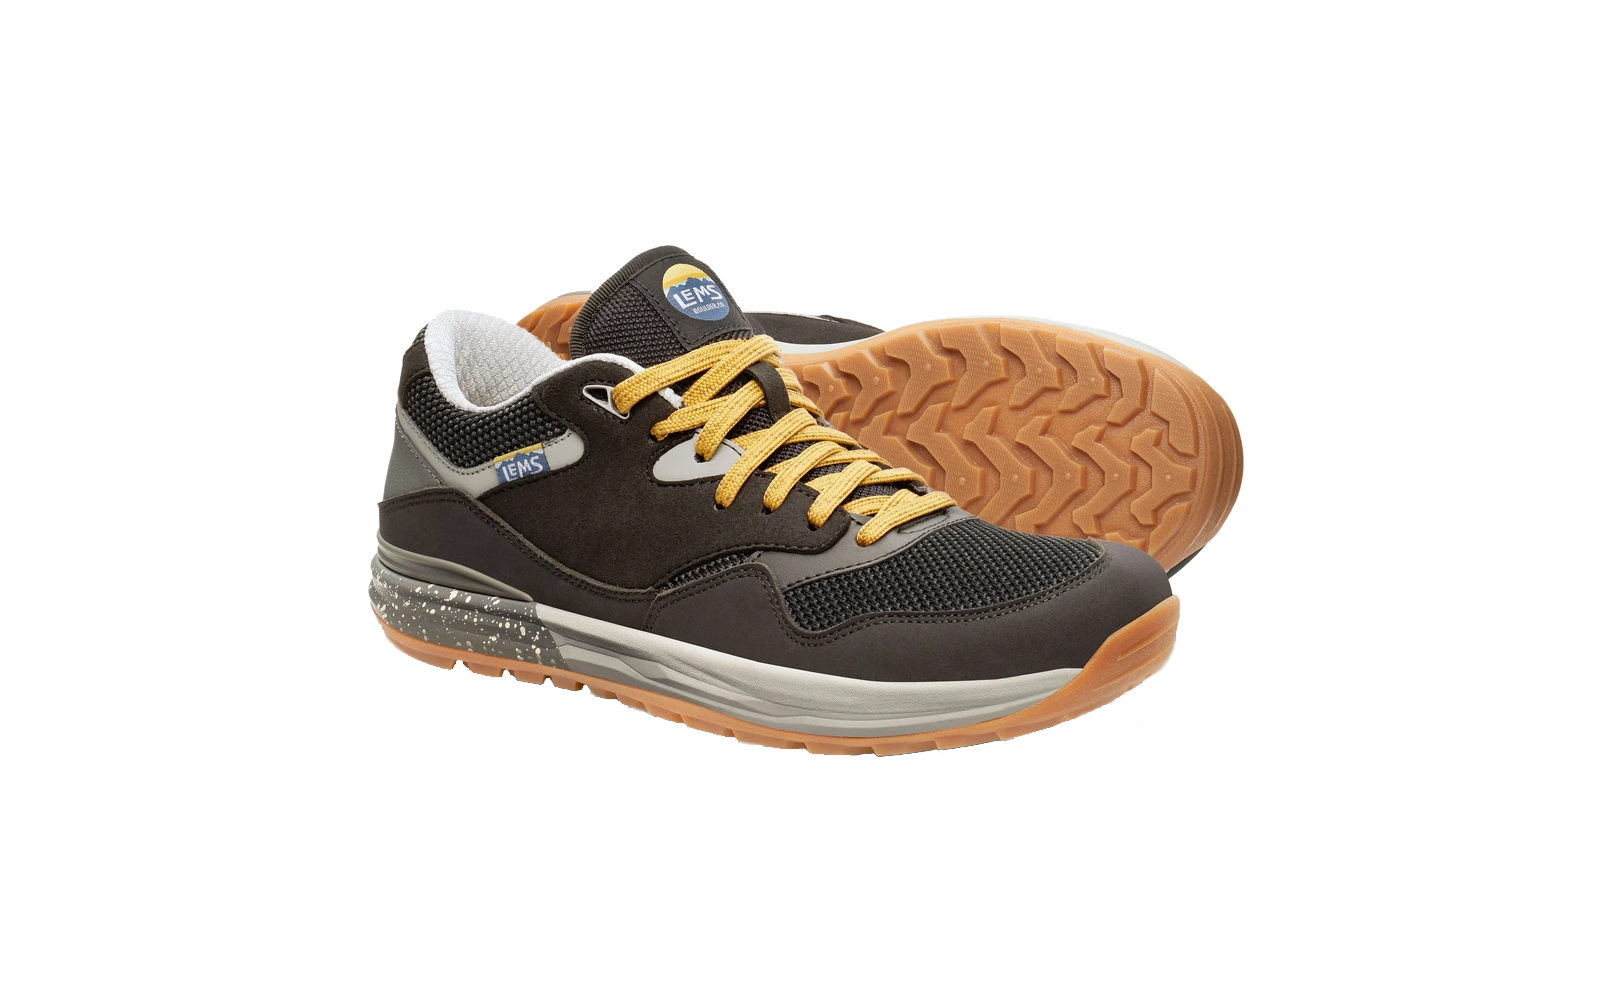 Lems Trailhead Hiking Shoe